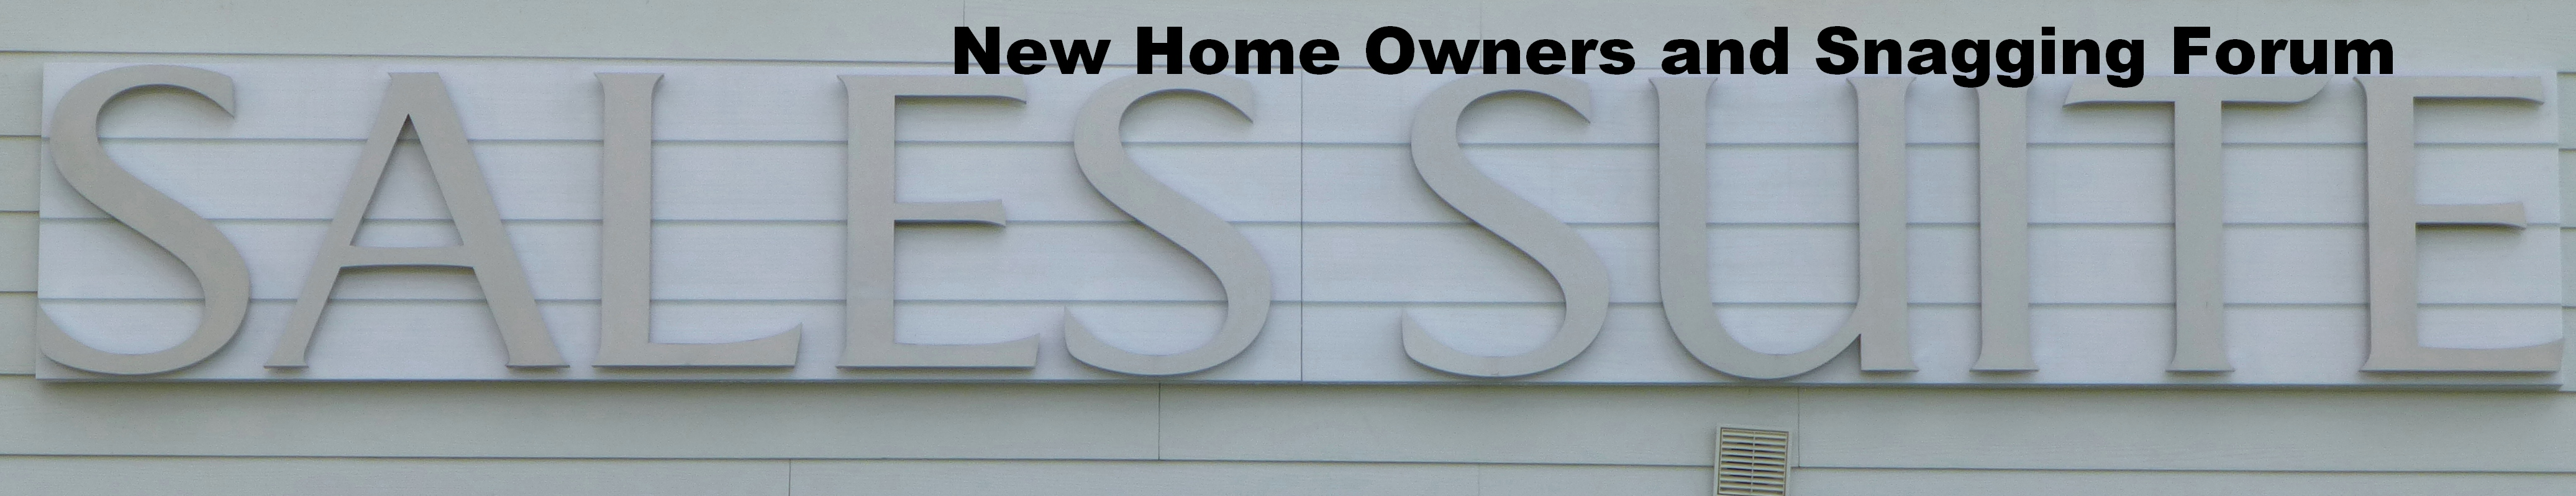 david wilson homes new home owners and snagging forum